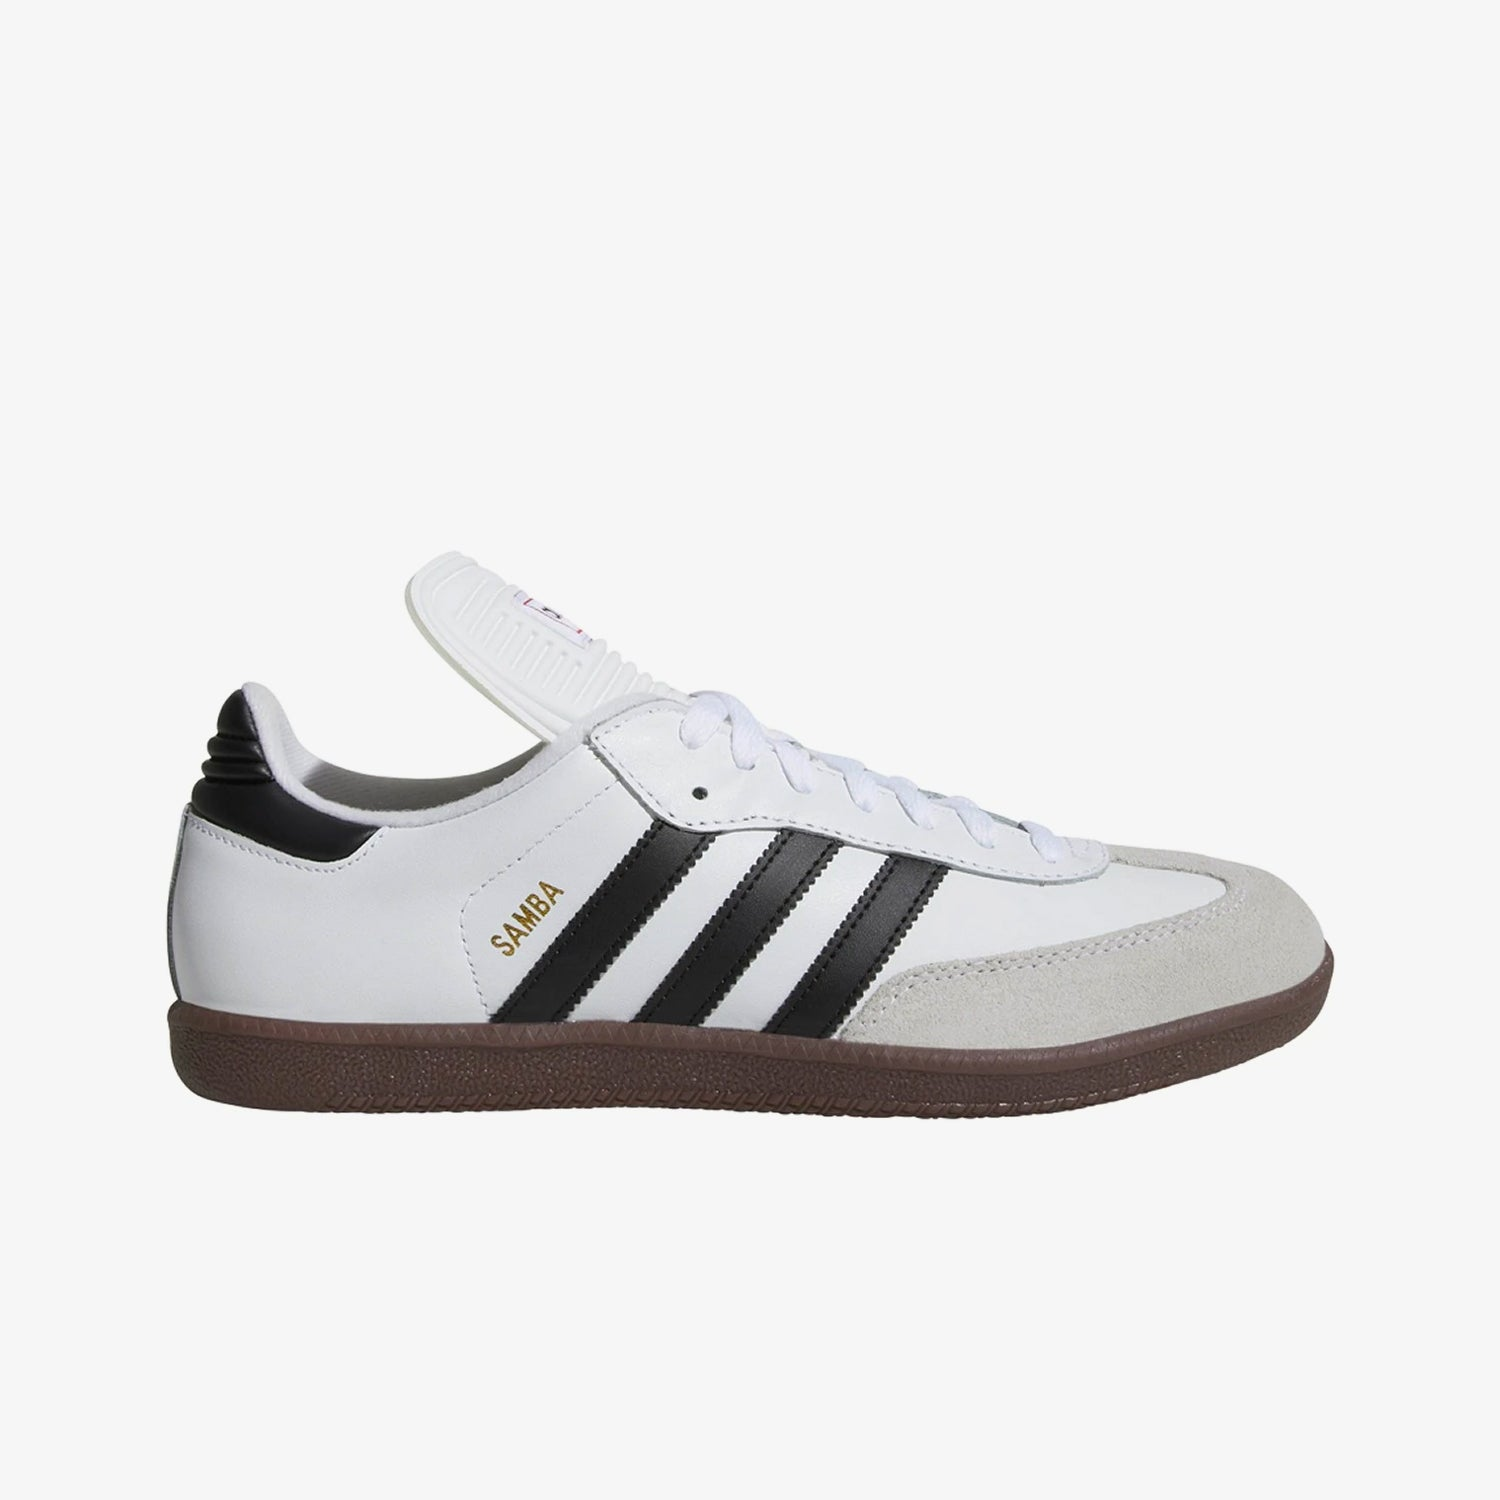 Samba Classic Indoor Soccer Shoes White Men's